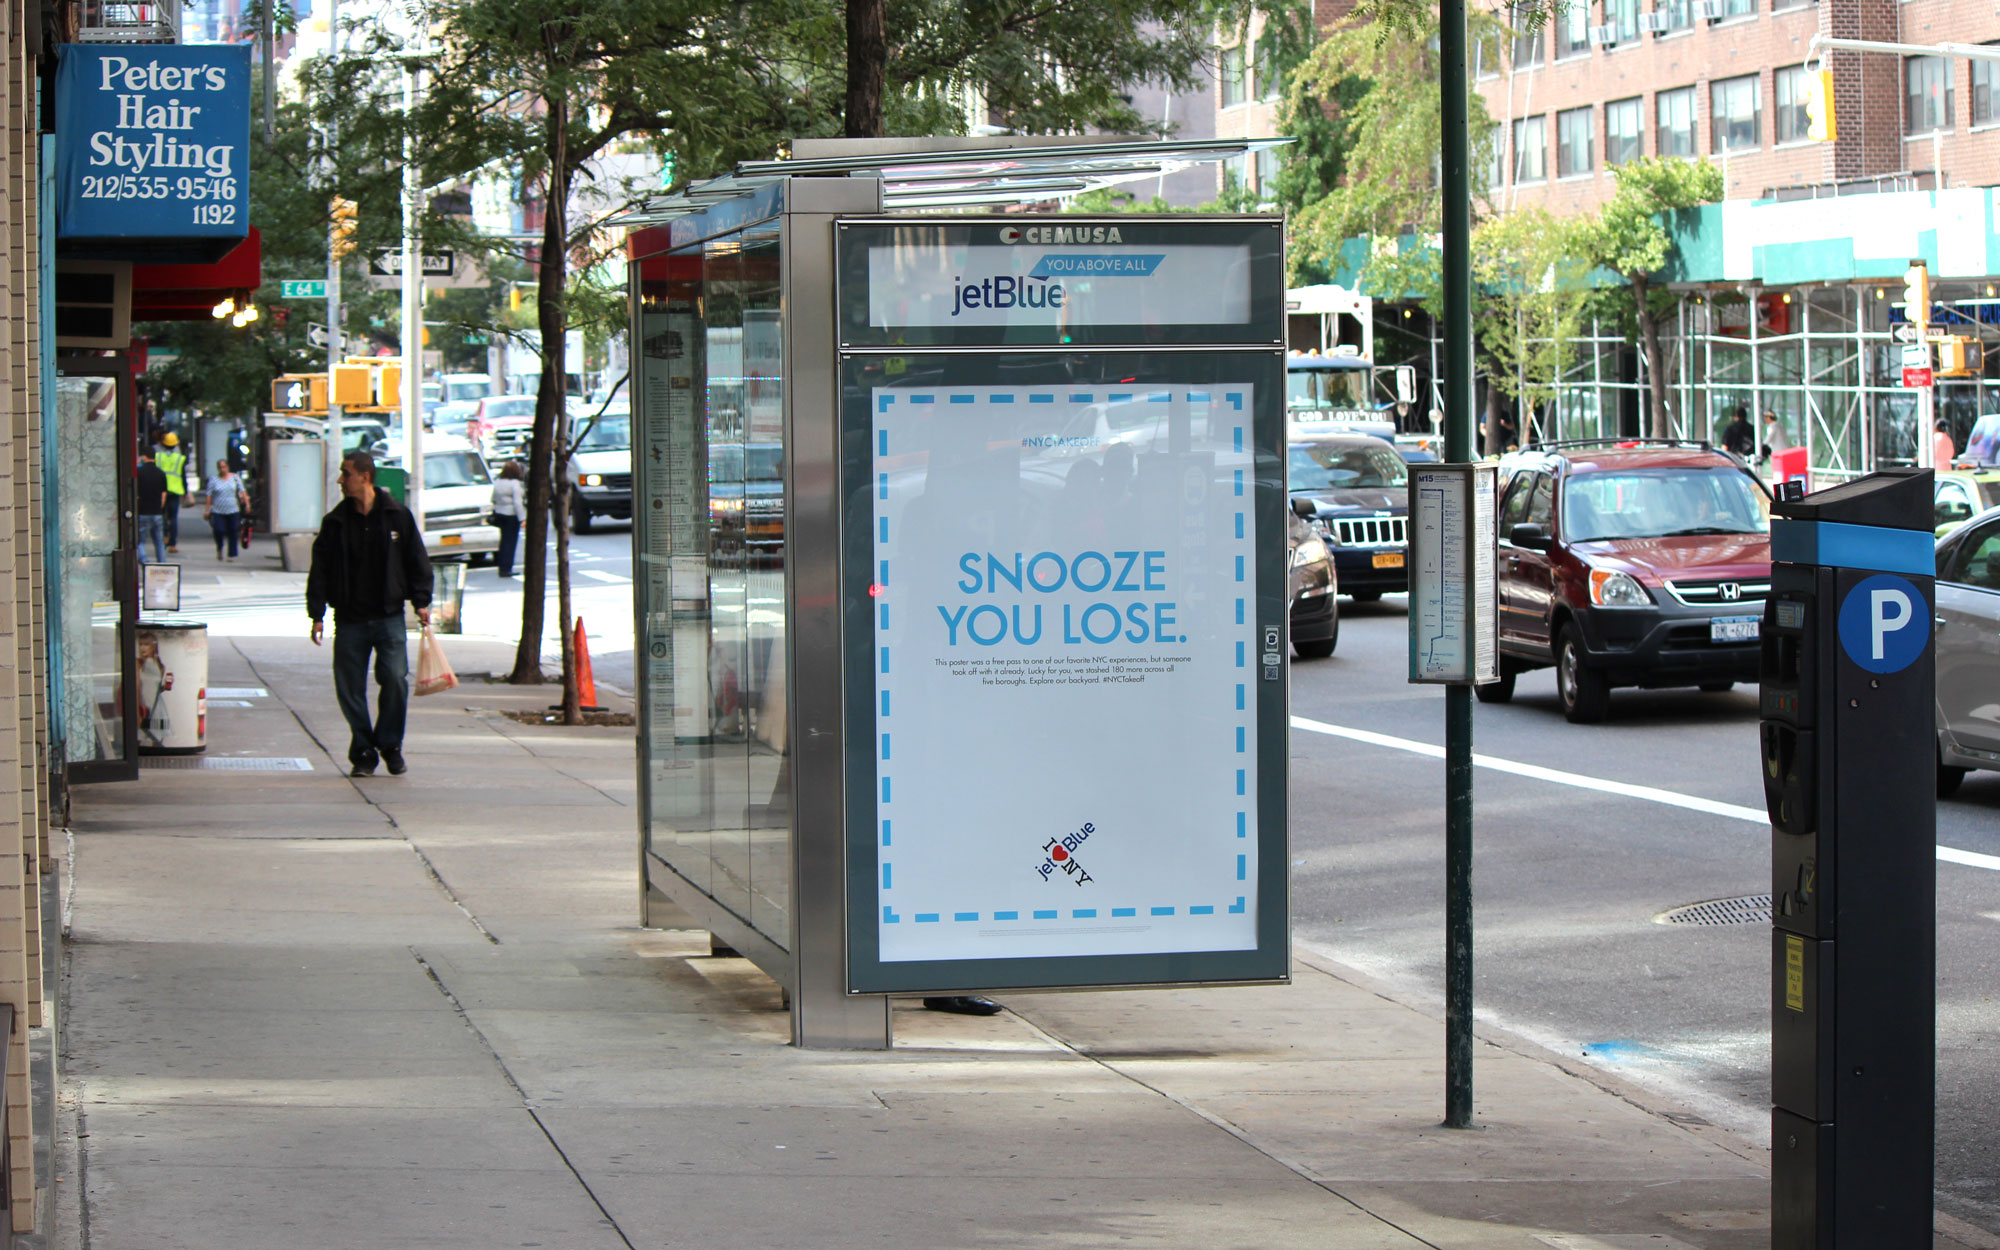 JetBlue Ads are Hiding Free Flights and Gift Certificates at NYC Bus Shelters